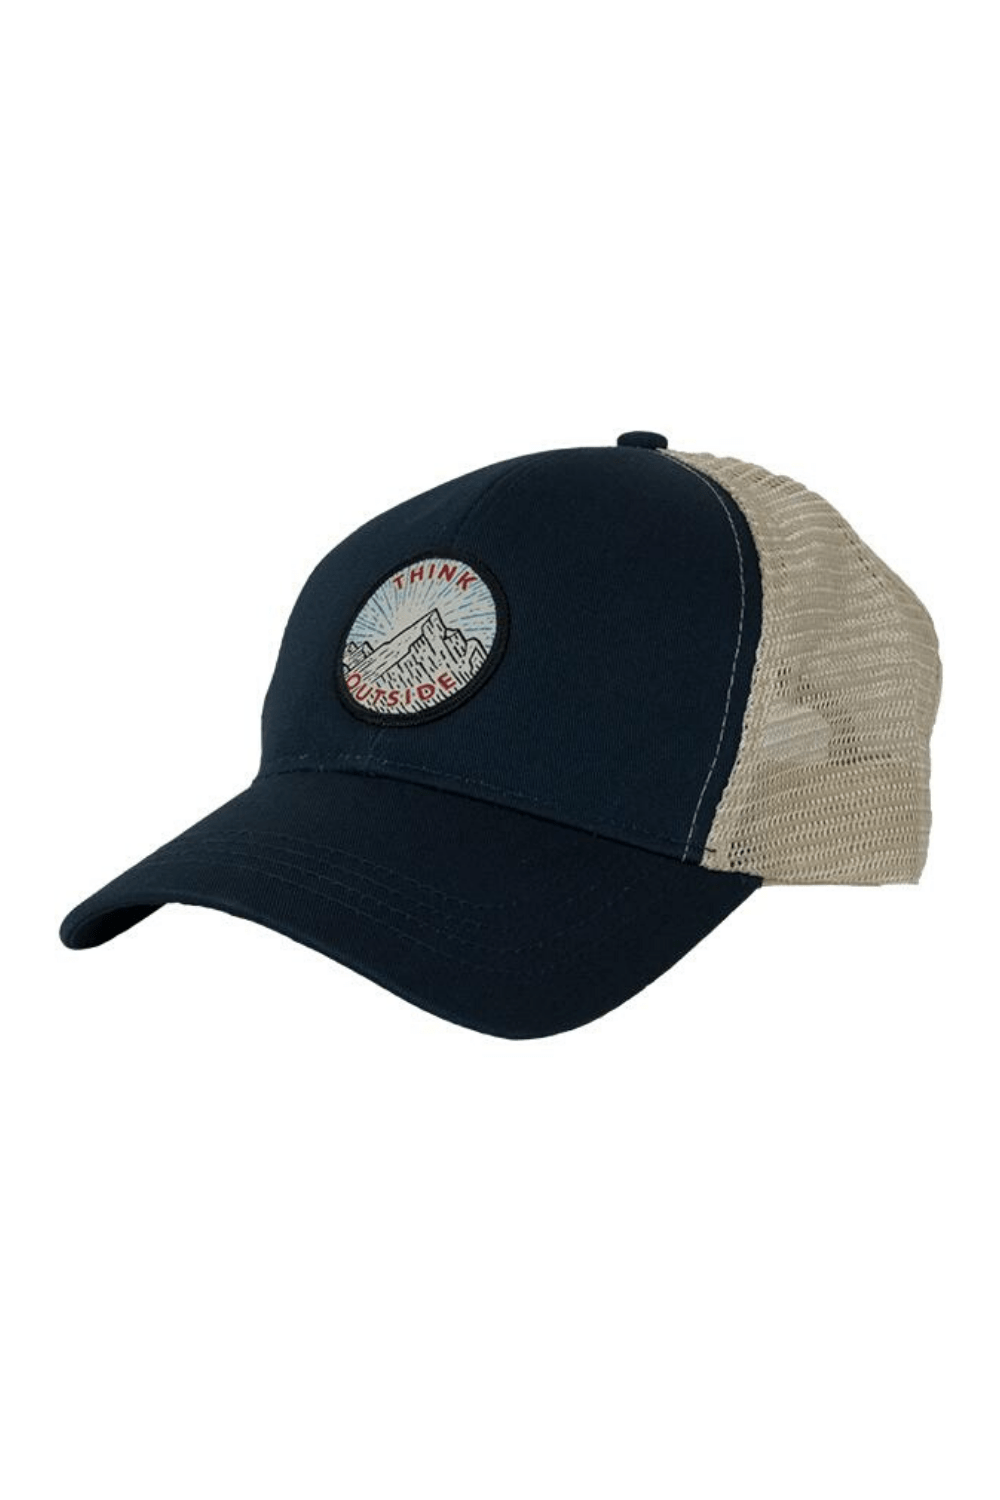 Seek Dry Goods Men's Hats Think Outside Cap • Pacific